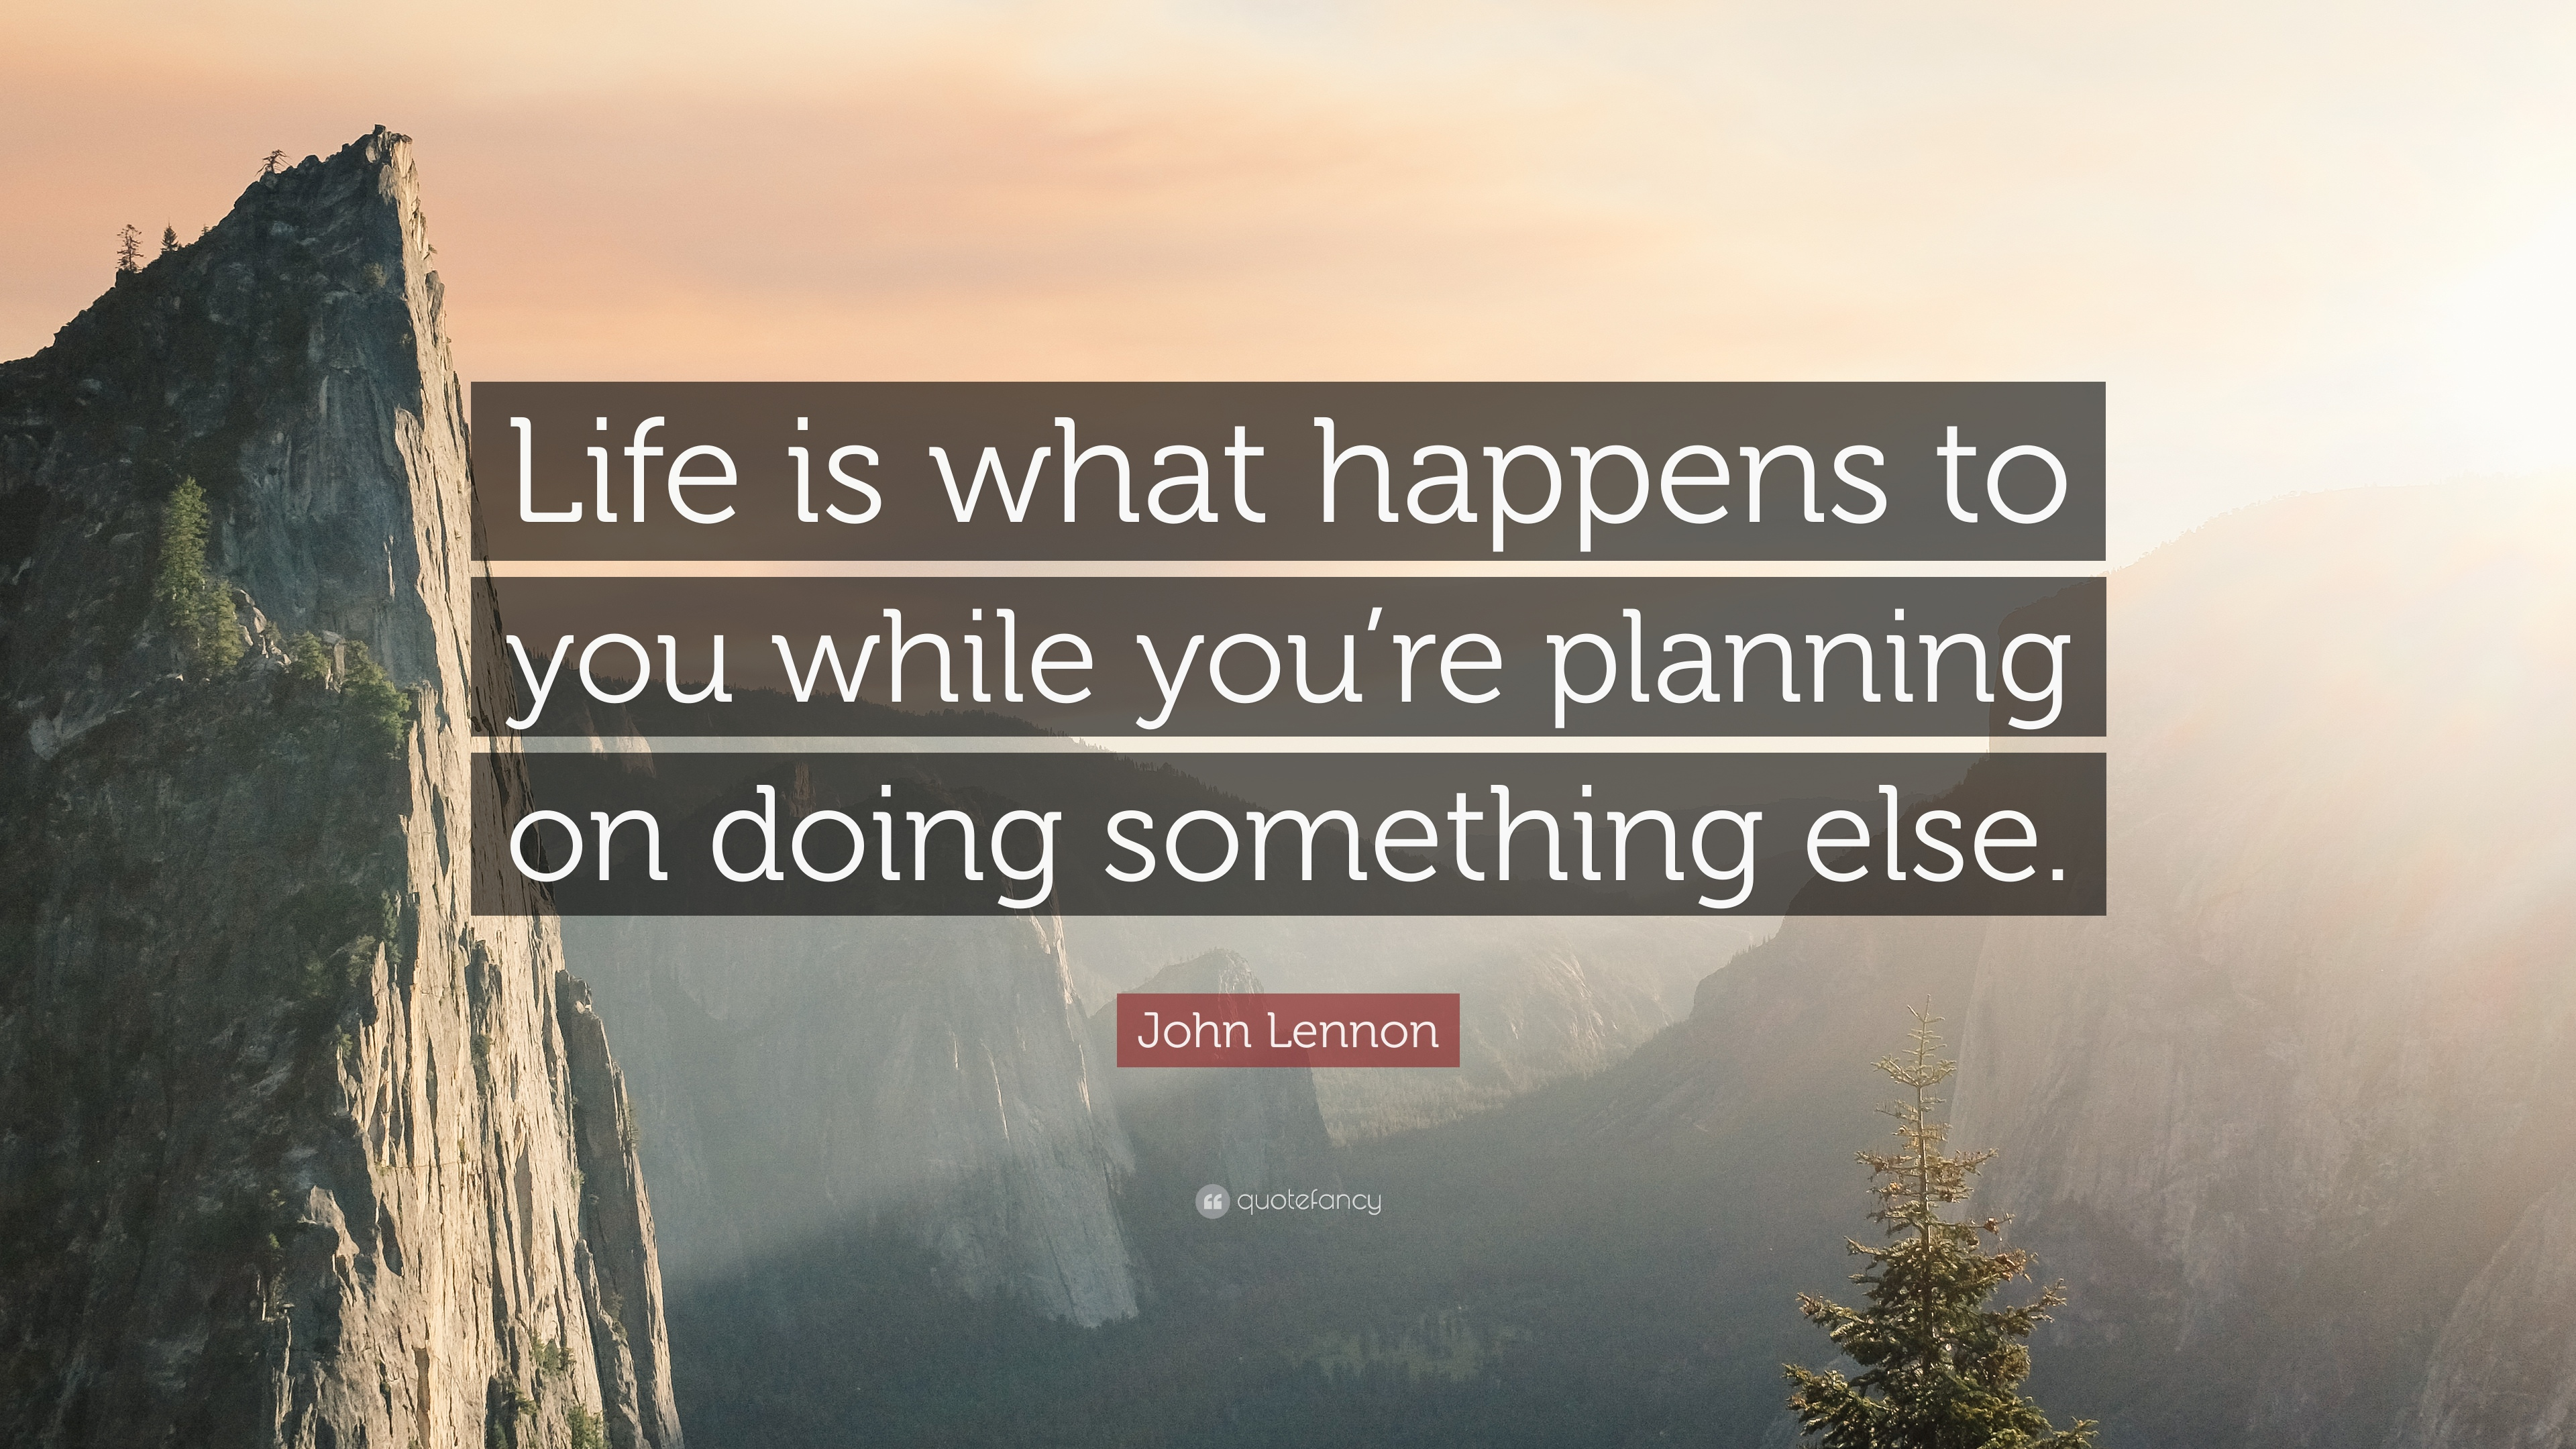 John Lennon Quote Life Is What Happens To You While Youre Planning